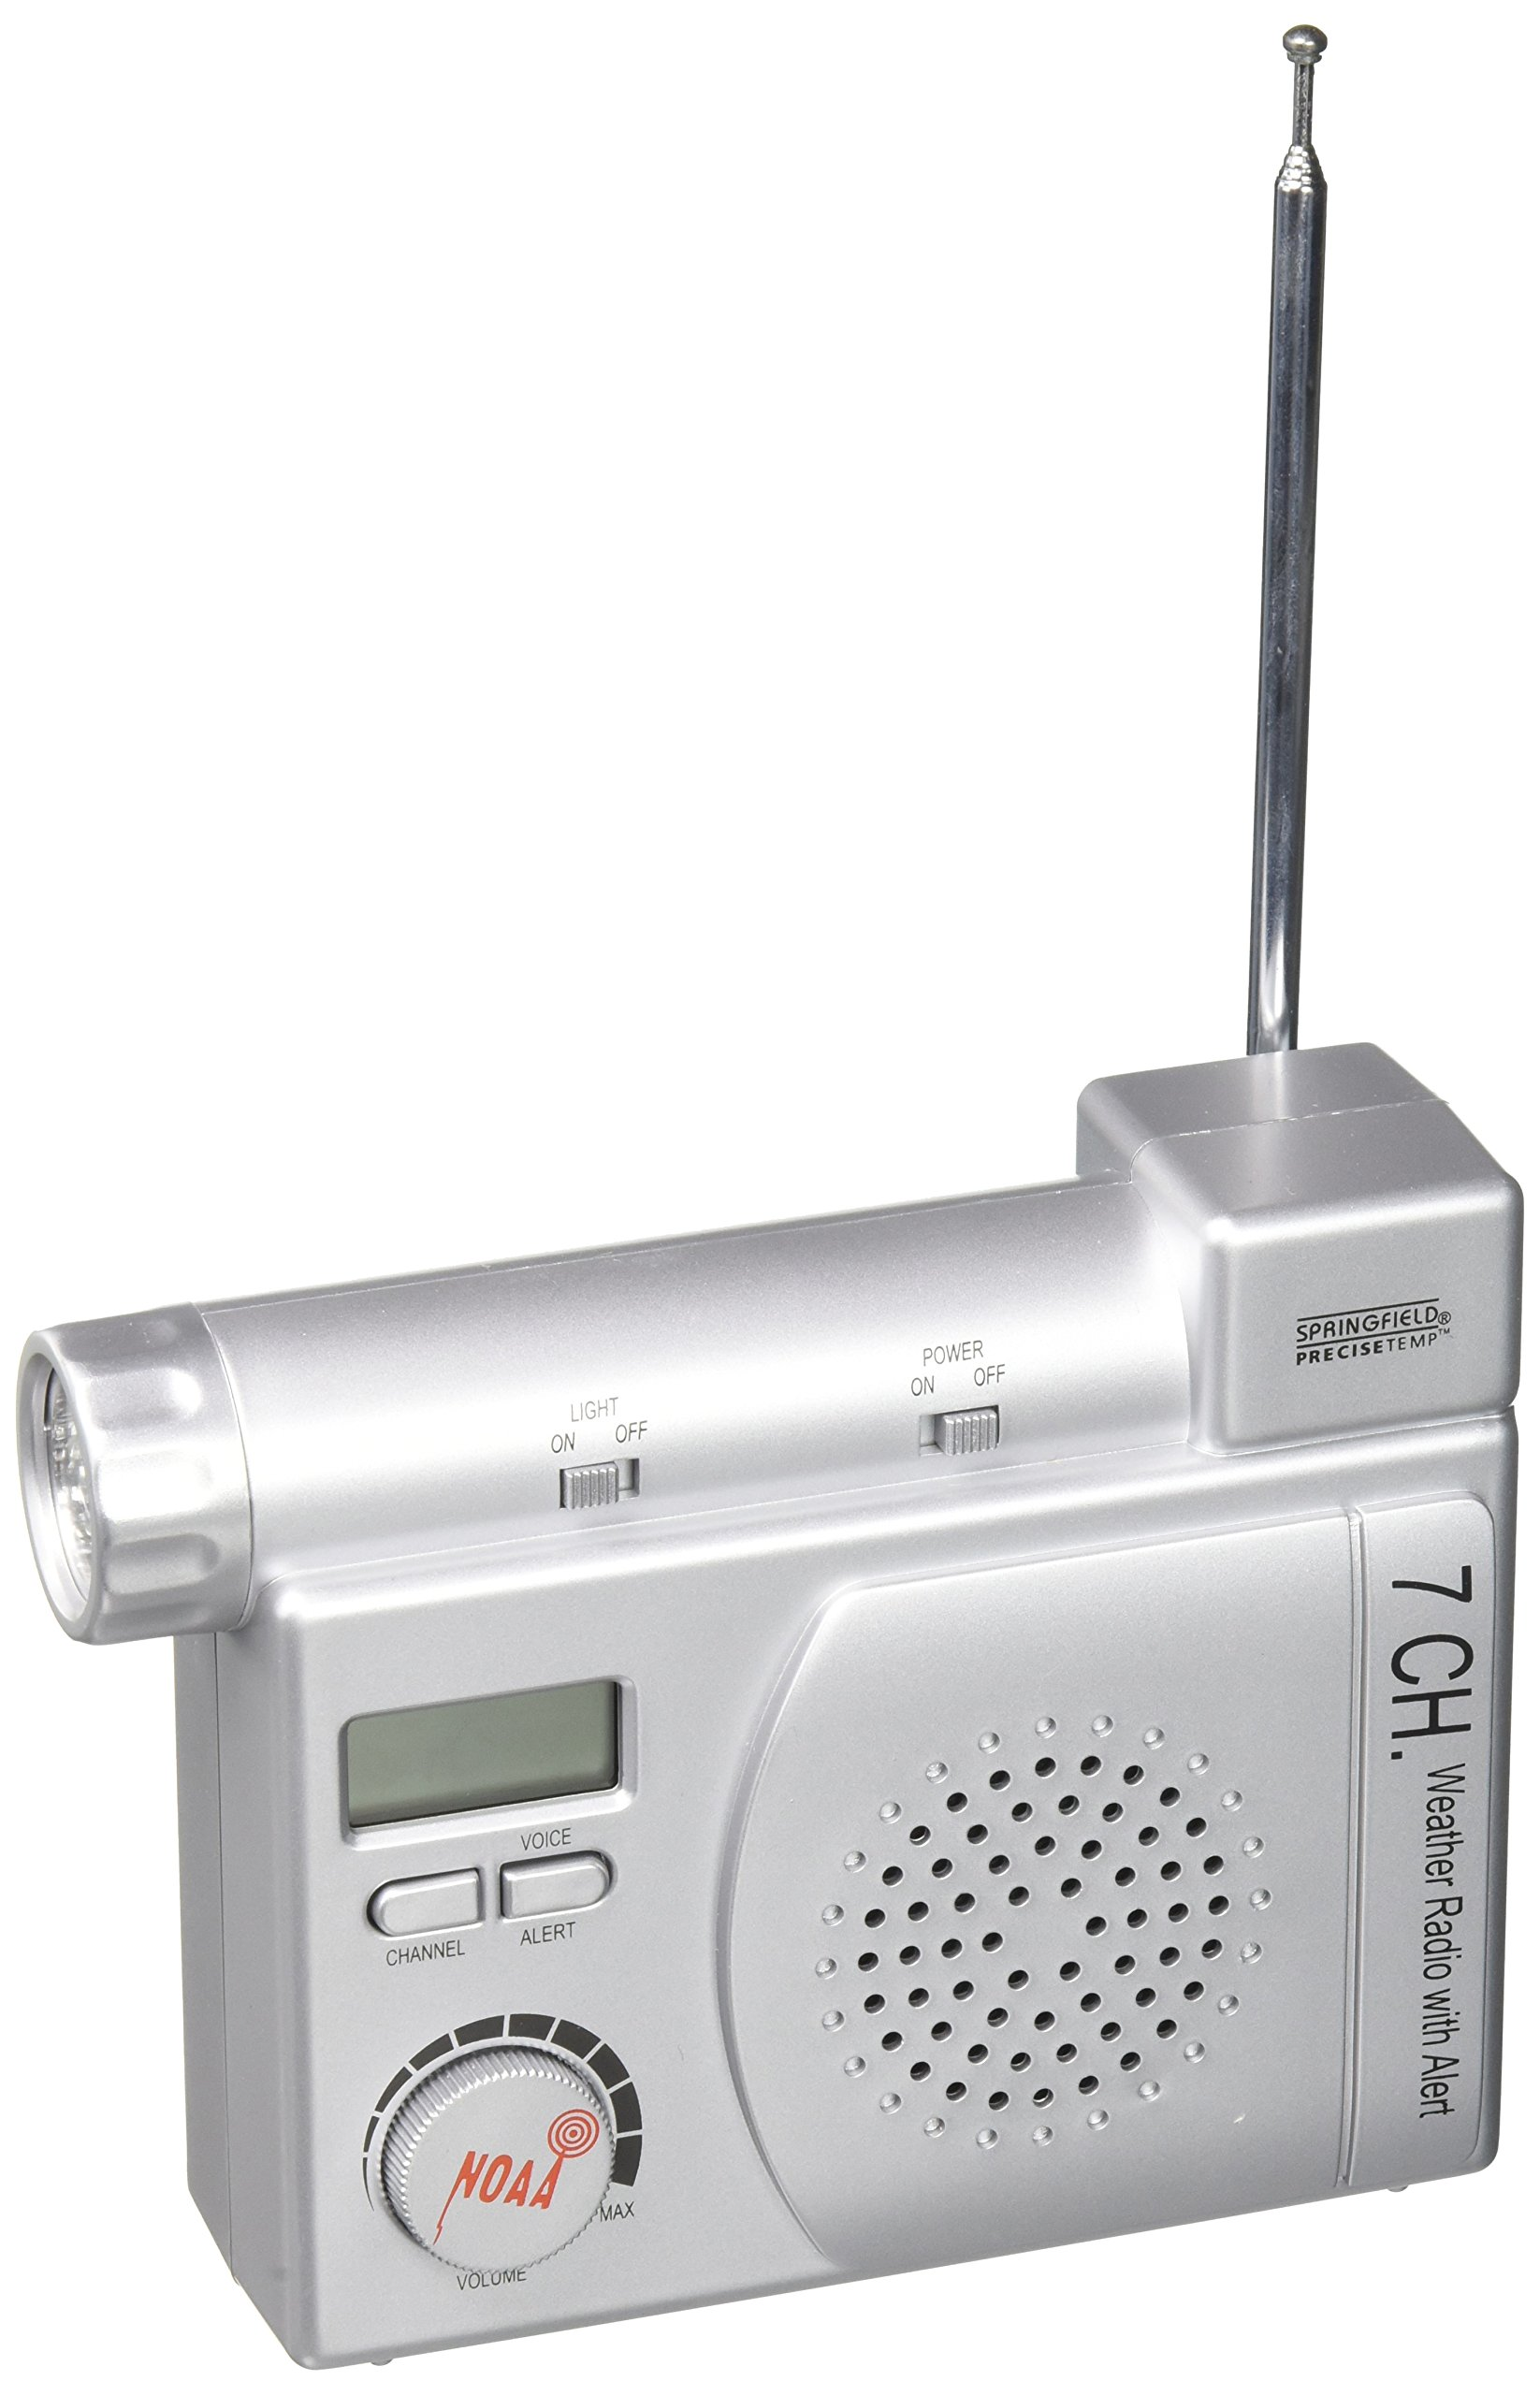 Springfield NOAA Weather Radio with Alert